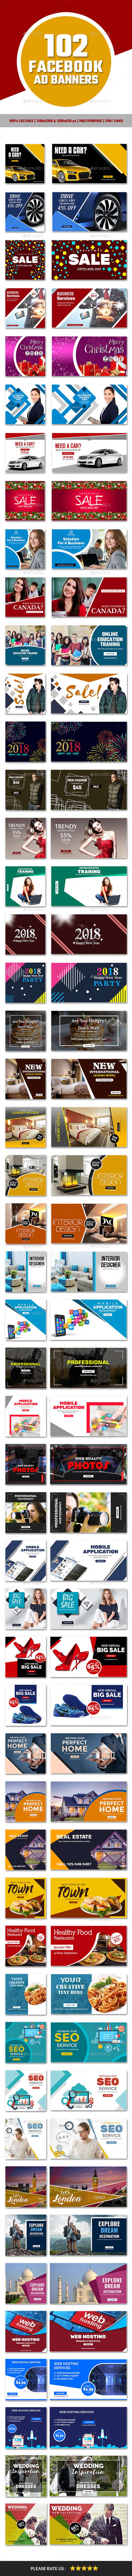 GraphicRiver Facebook Ad Banners 102 Designs 21104882